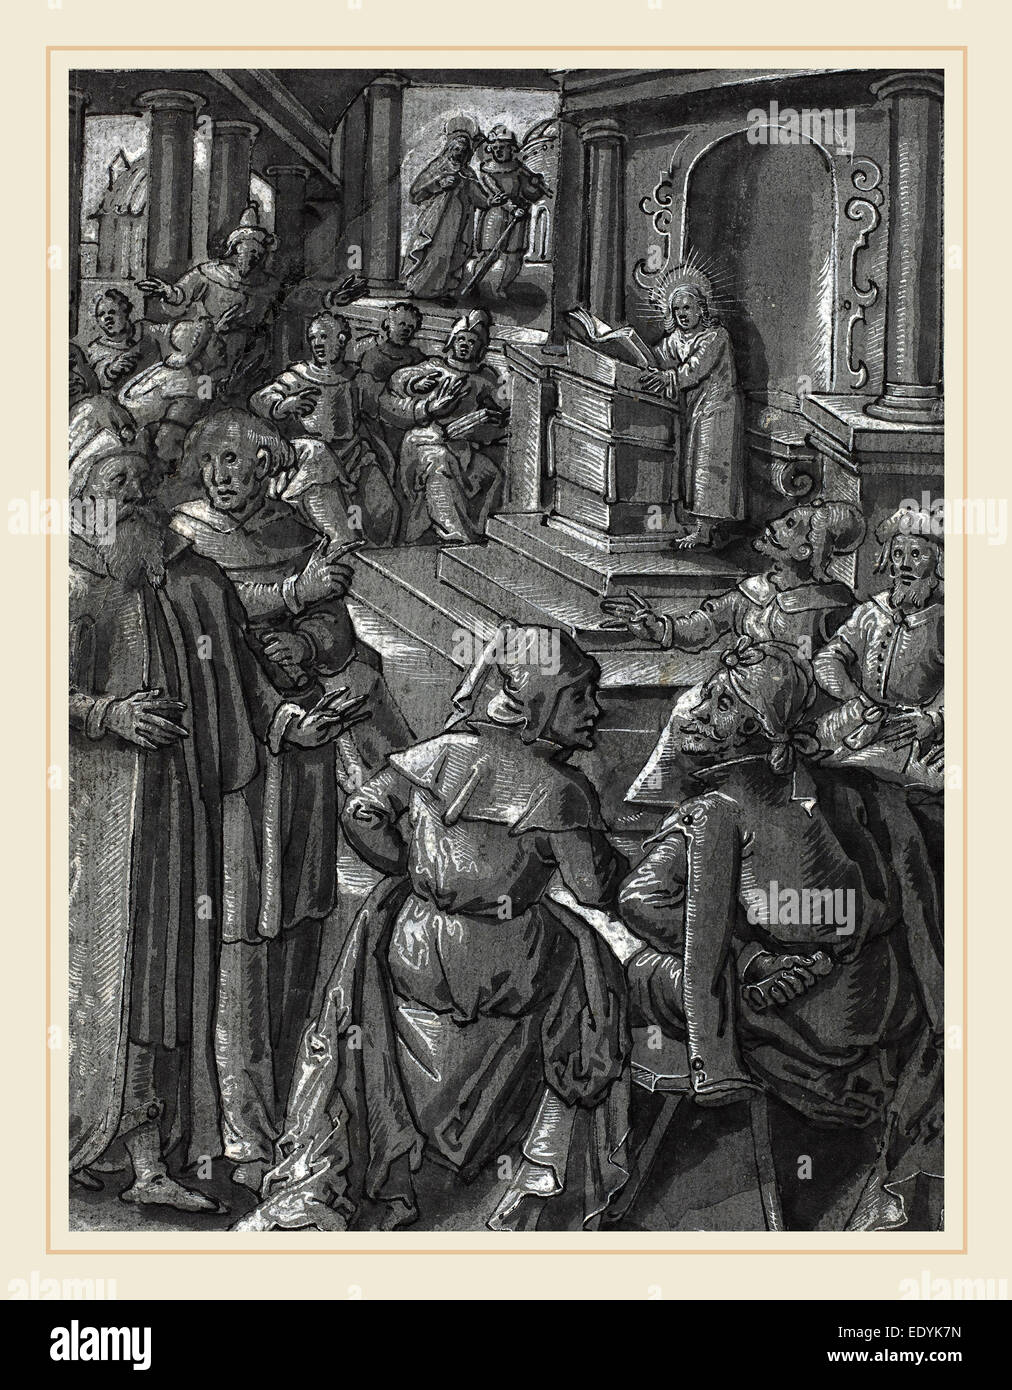 German 16th Century, Christ Healing the Lame [verso], c. 1600, pen and black ink with brush and gray ink - Stock Image